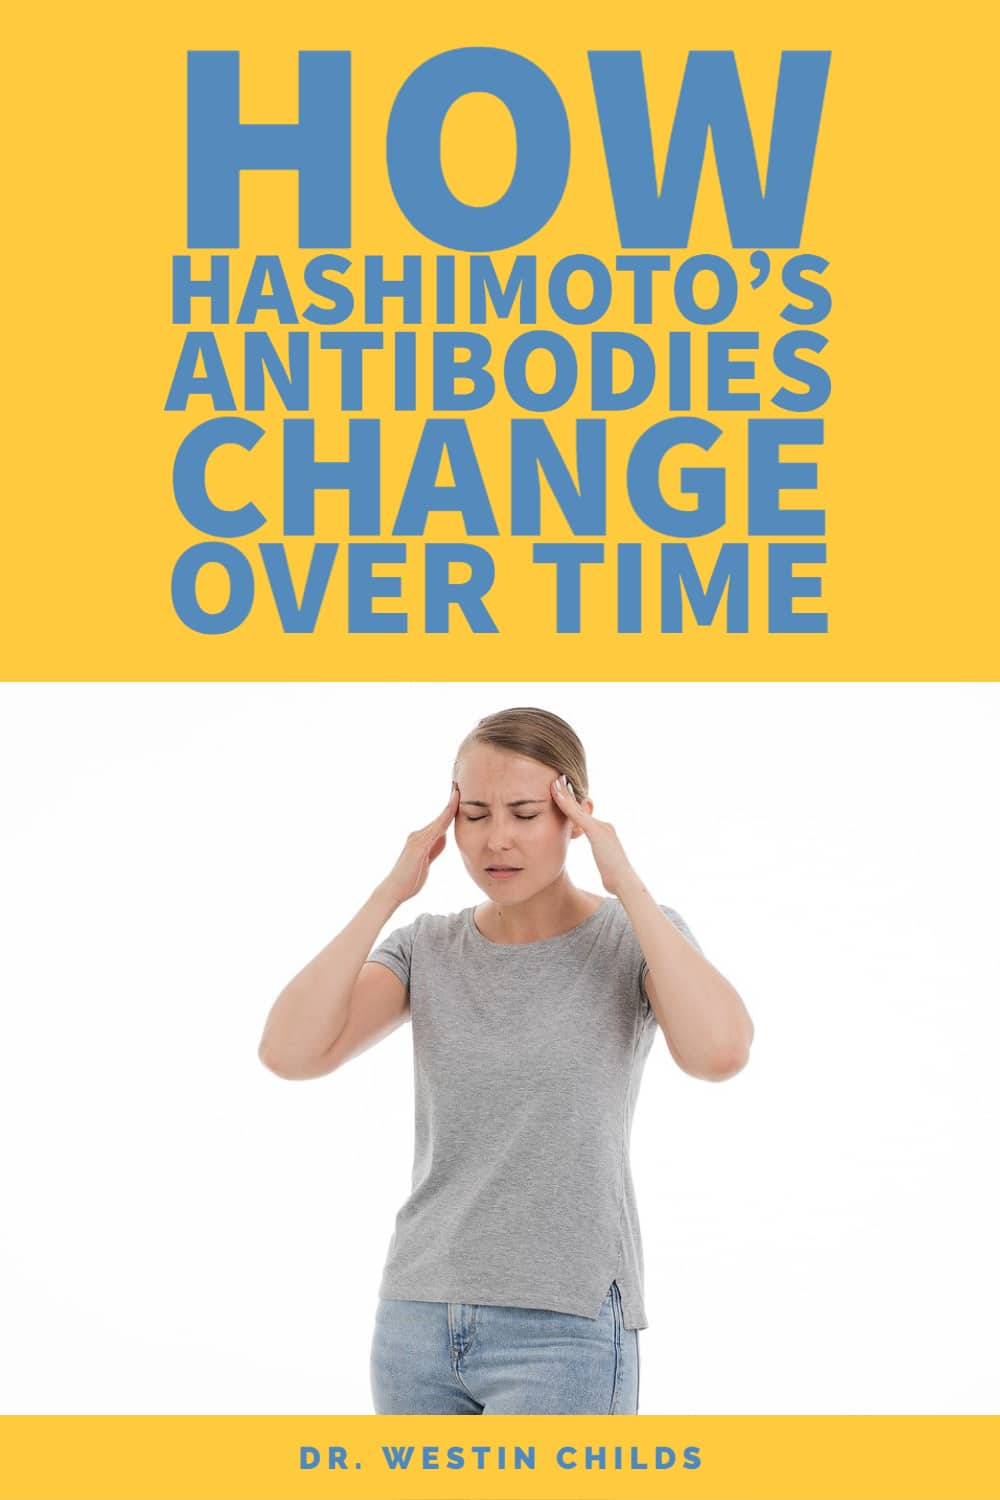 hashimoto's antibodies change and fluctuate over time